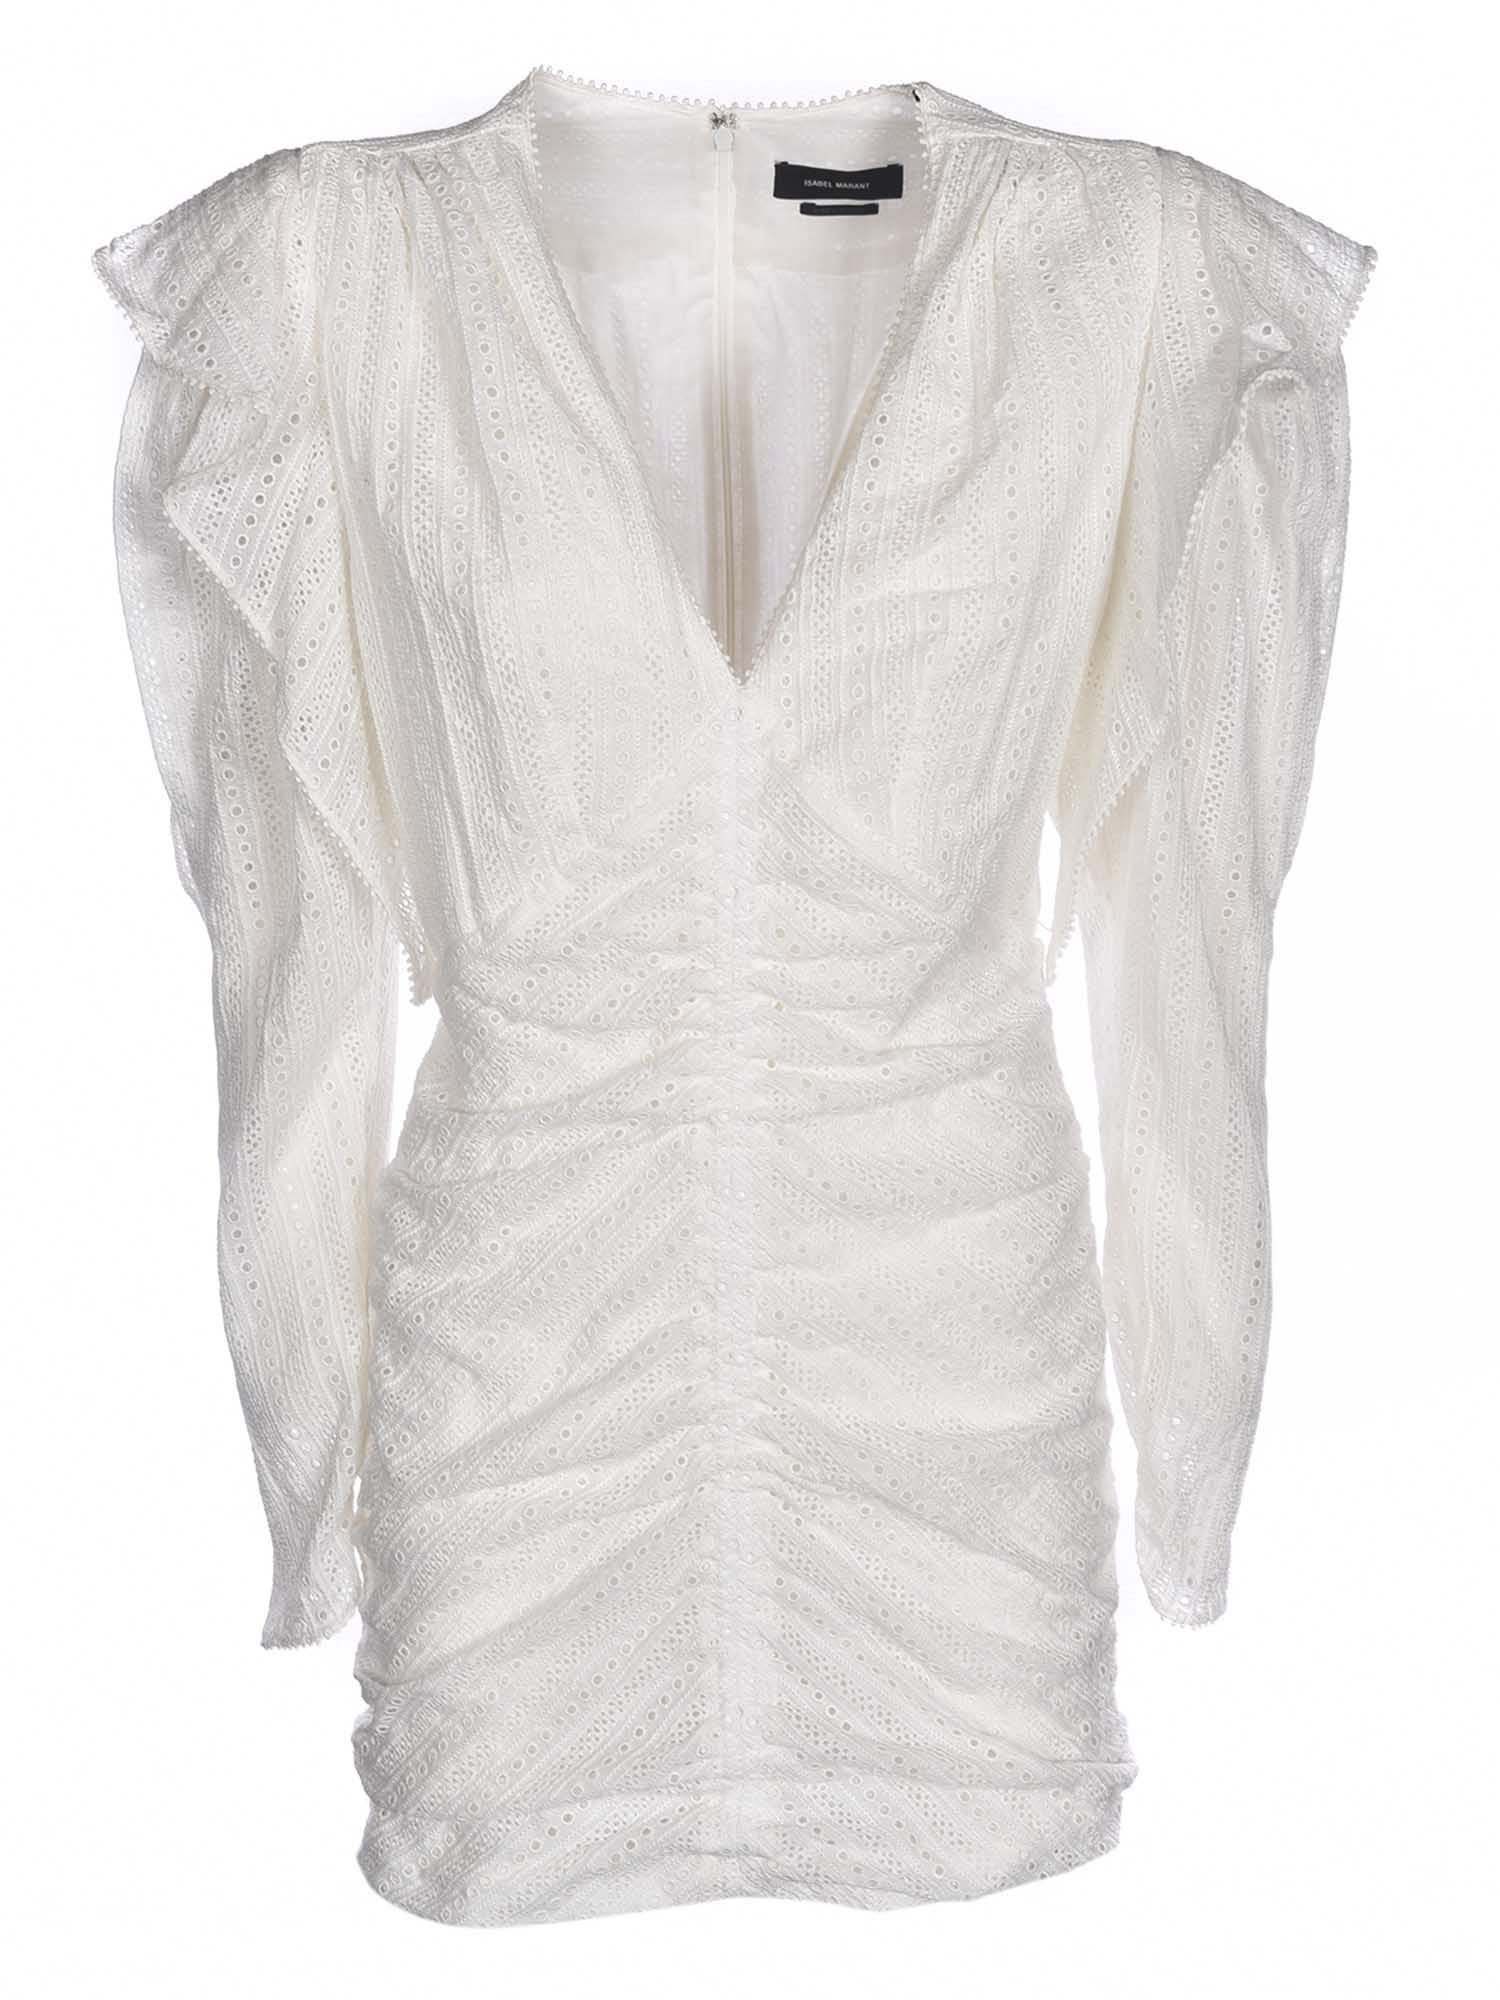 Isabel Marant ISABEL MARANT GETYA DRESS IN WHITE